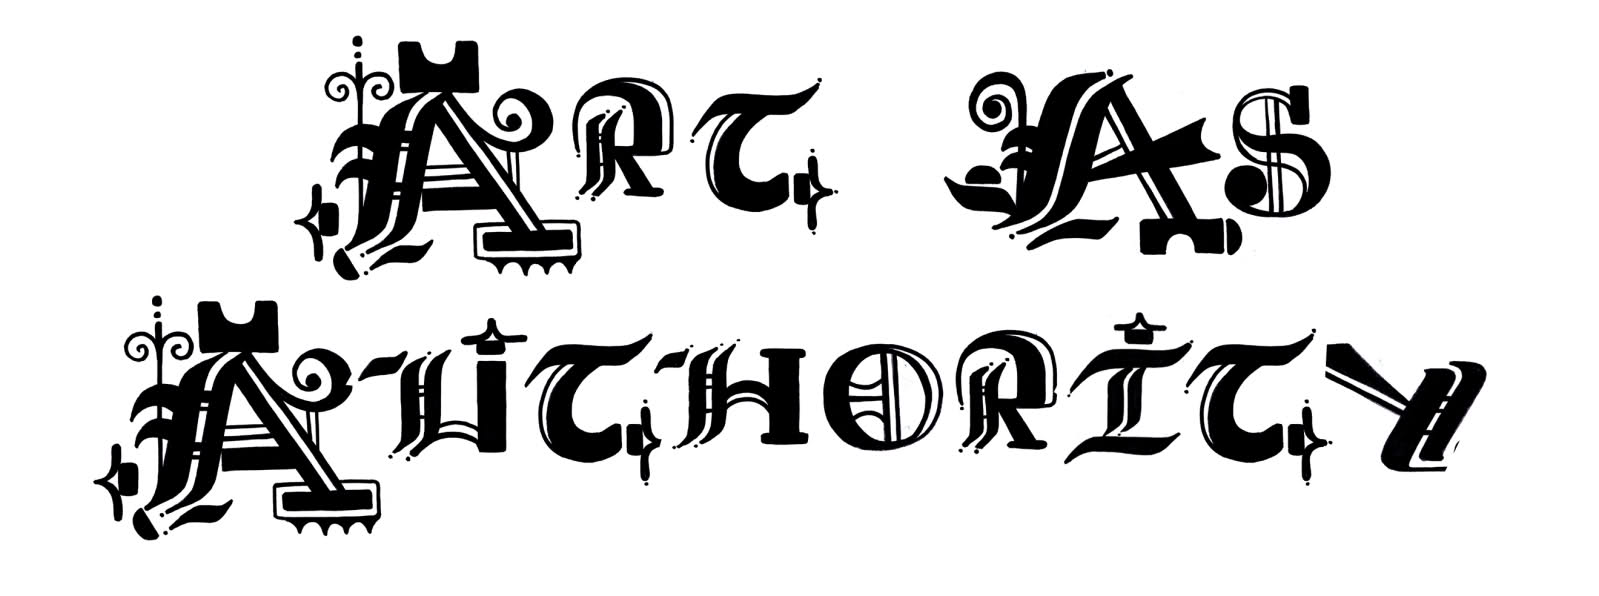 Spoodawgmusic free old english letters